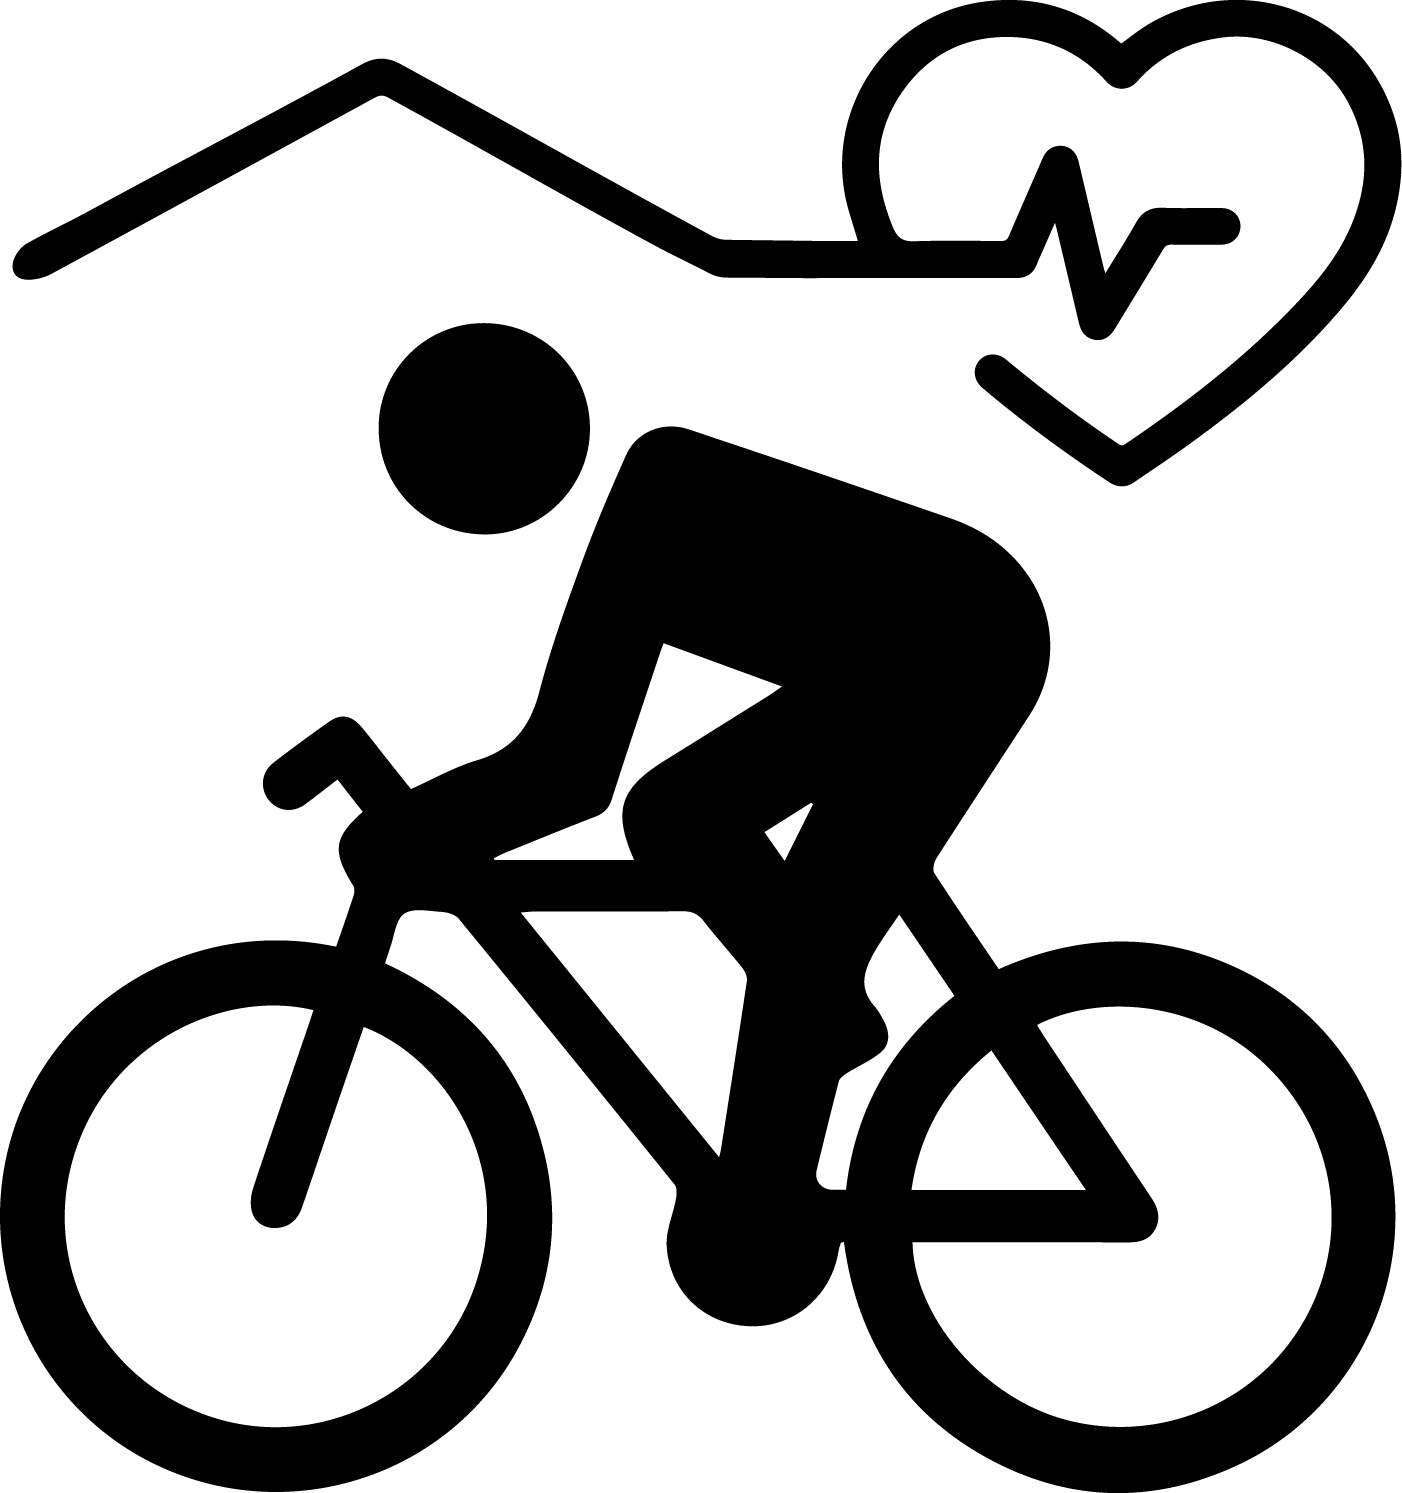 Bike clipart indoor cycling Mapdec Training Works Workout Training